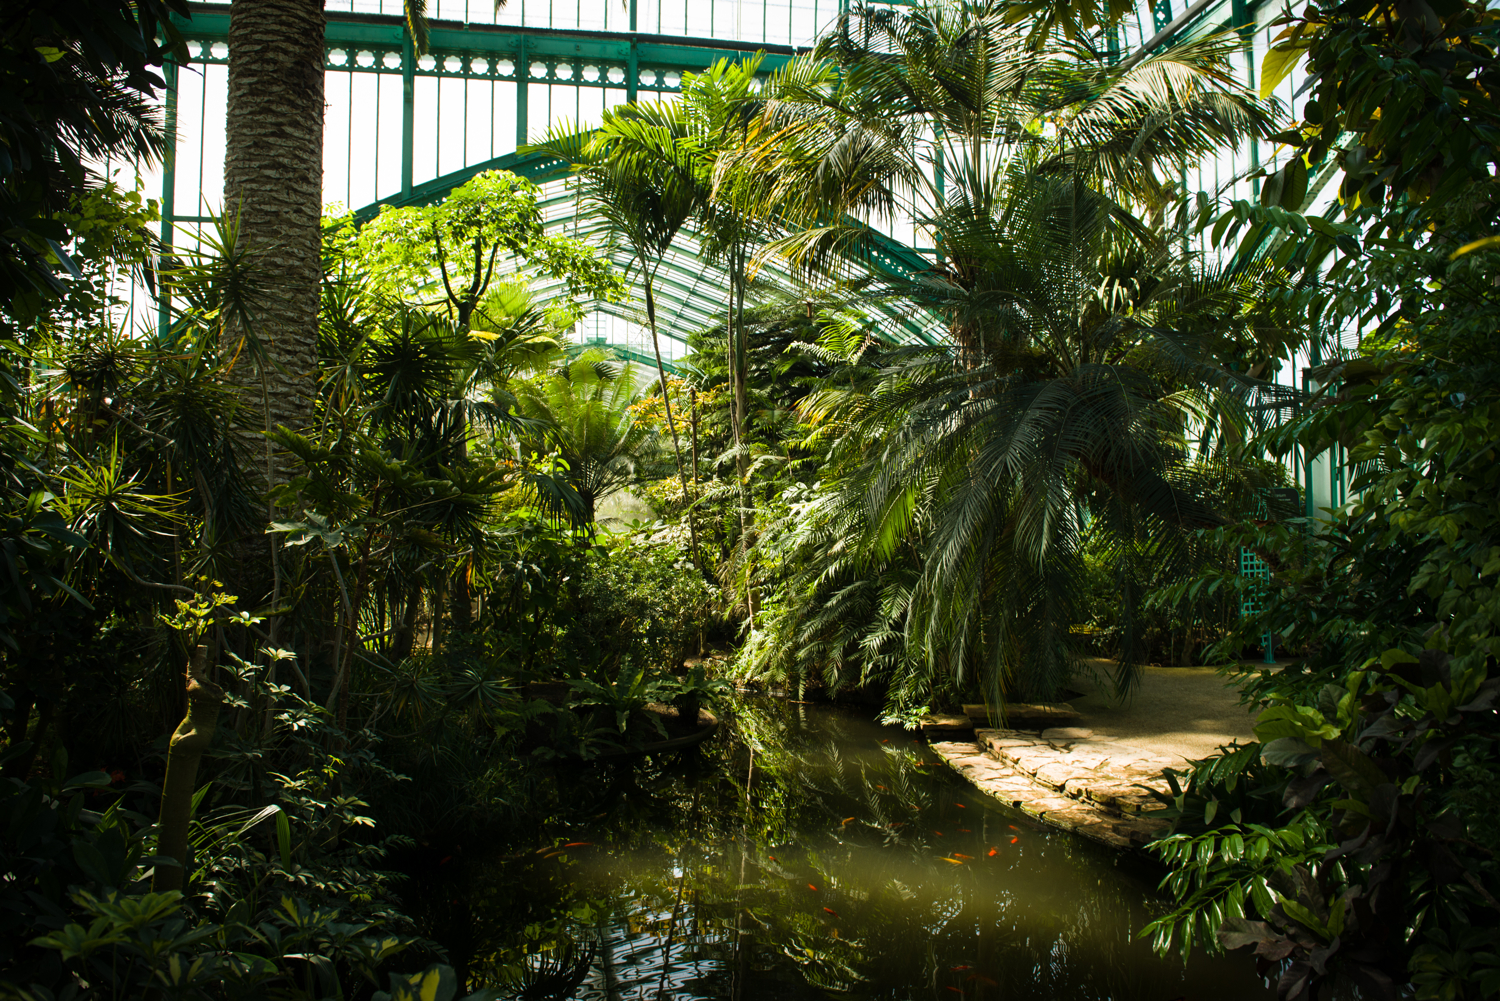 France, Paris. Inside a greenhouse in the Jardins des Serres d'Auteuil. The plants grown in the greenhouses in the Jardins des Serres d'Auteuil are used for the decoration of municipal buildings in Paris.